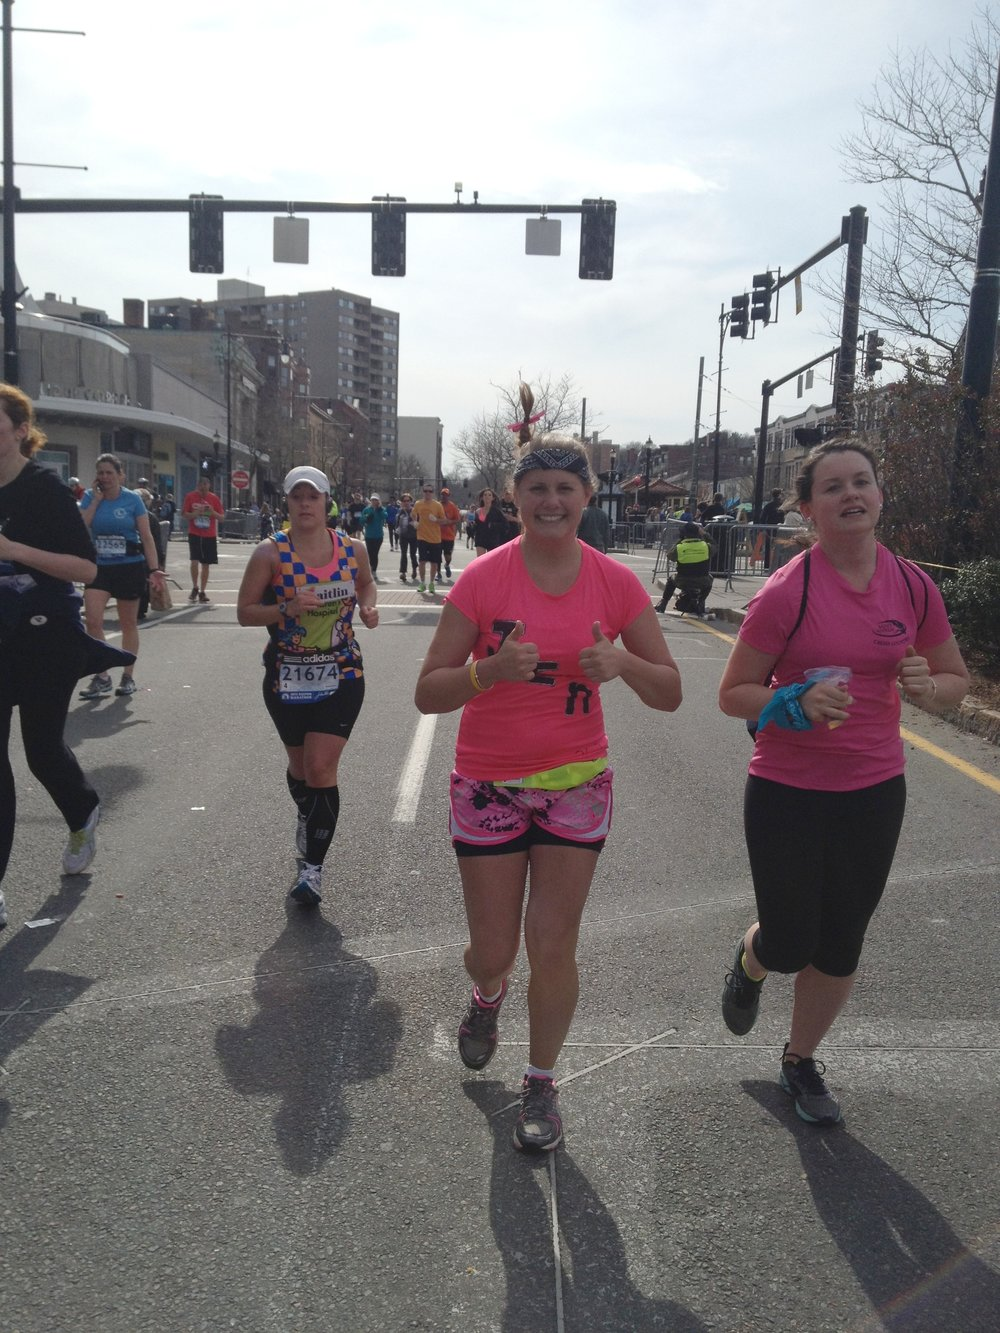 Jennifer Pace ran in the 2013 Boston Marathon and has plans to run again this year. (Courtesy/Jennifer Pace)